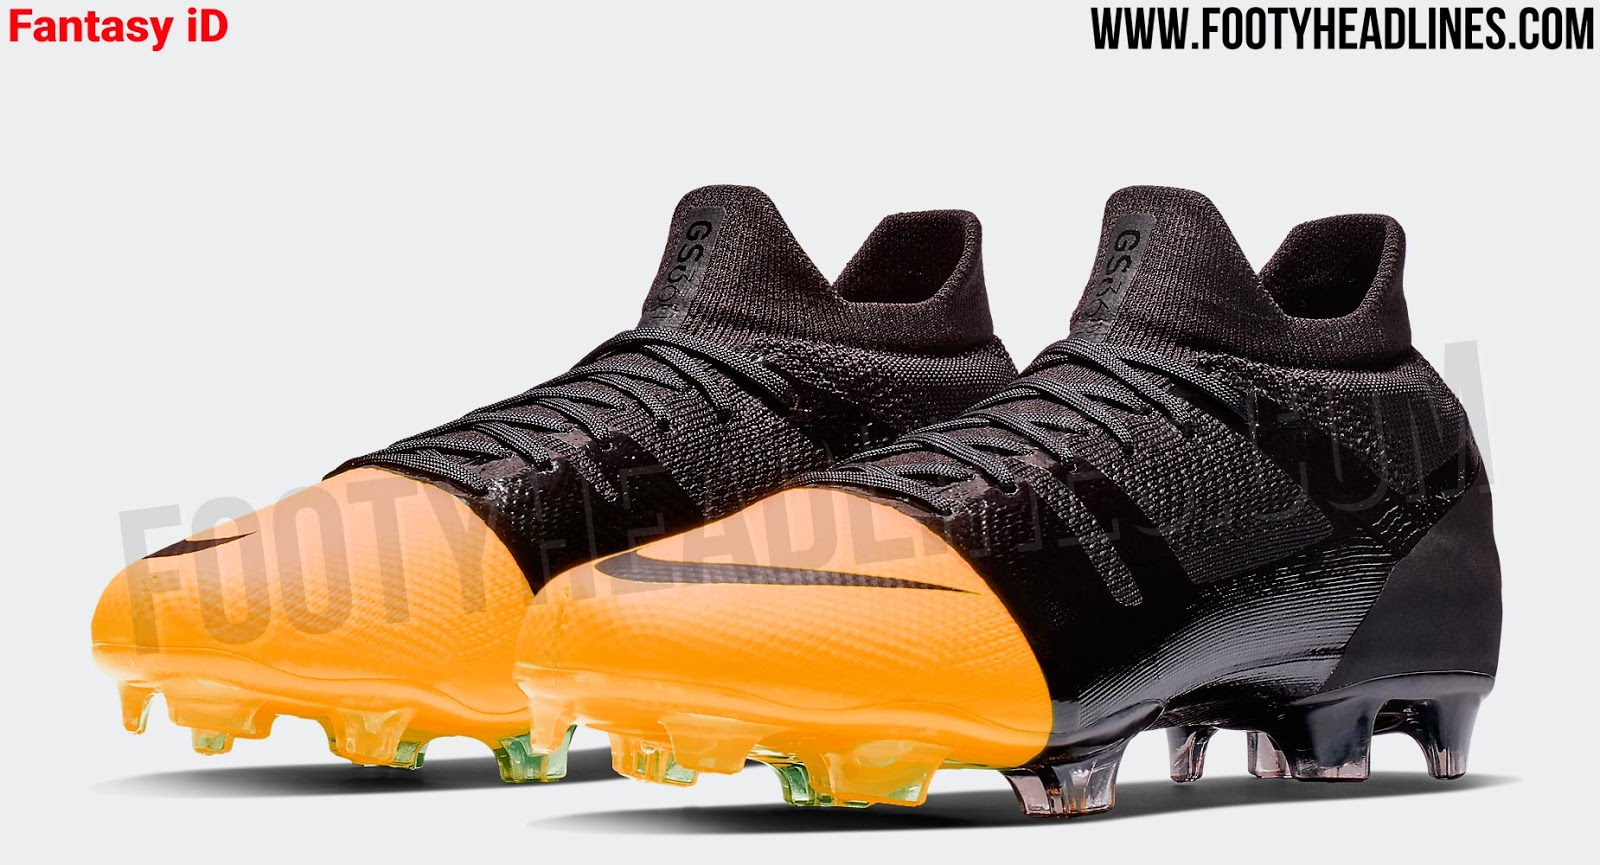 Exclusive: Nike to Release Nike Mercurial GS360 iD Boots - Footy ...